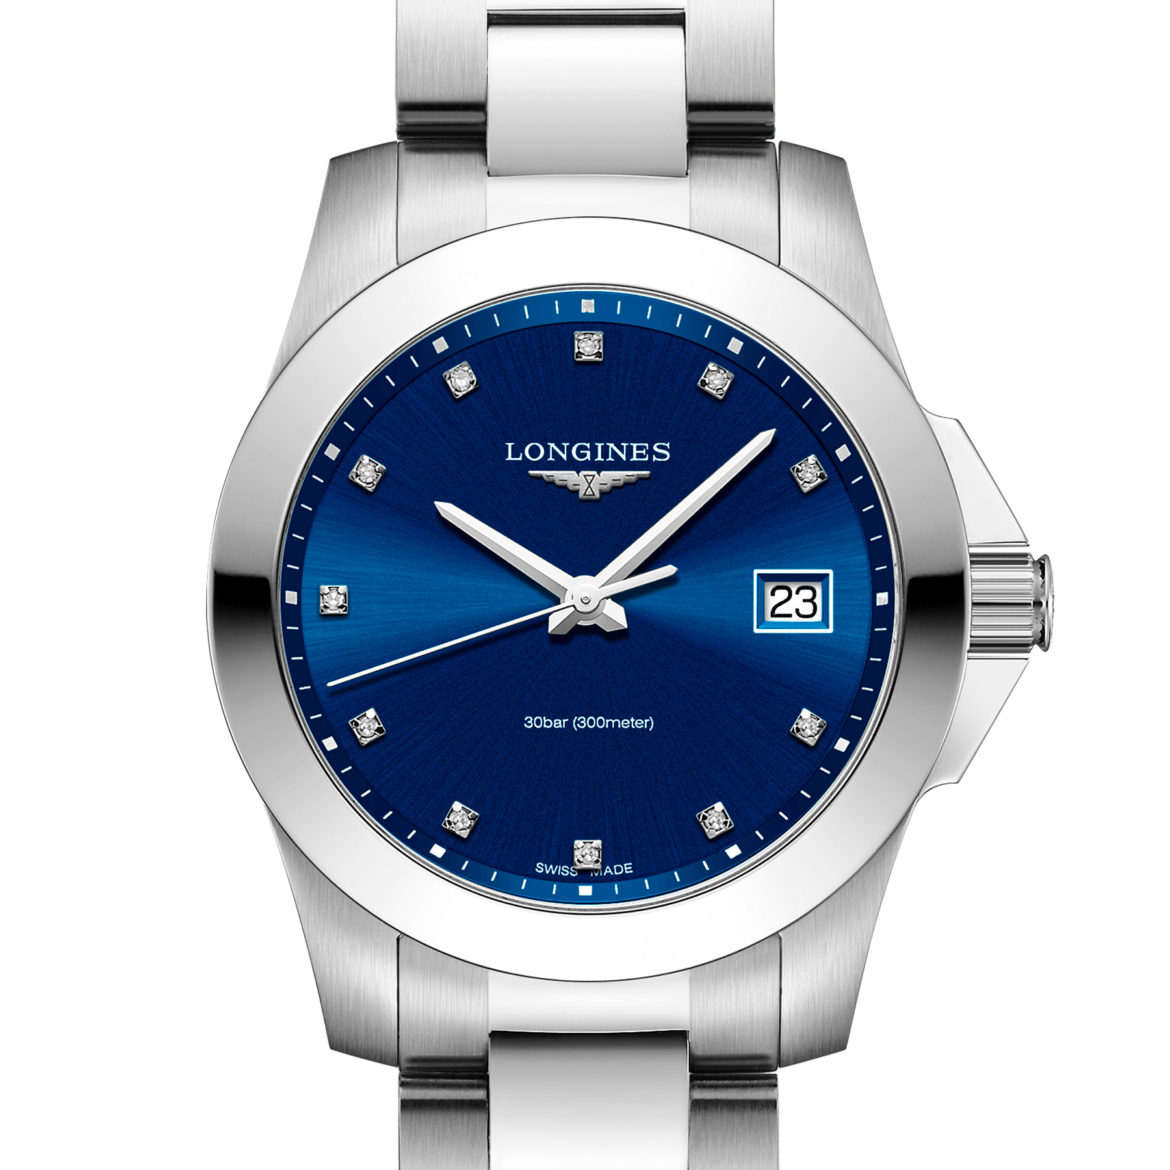 LONGINES</br/>Conquest </br/>L33774976